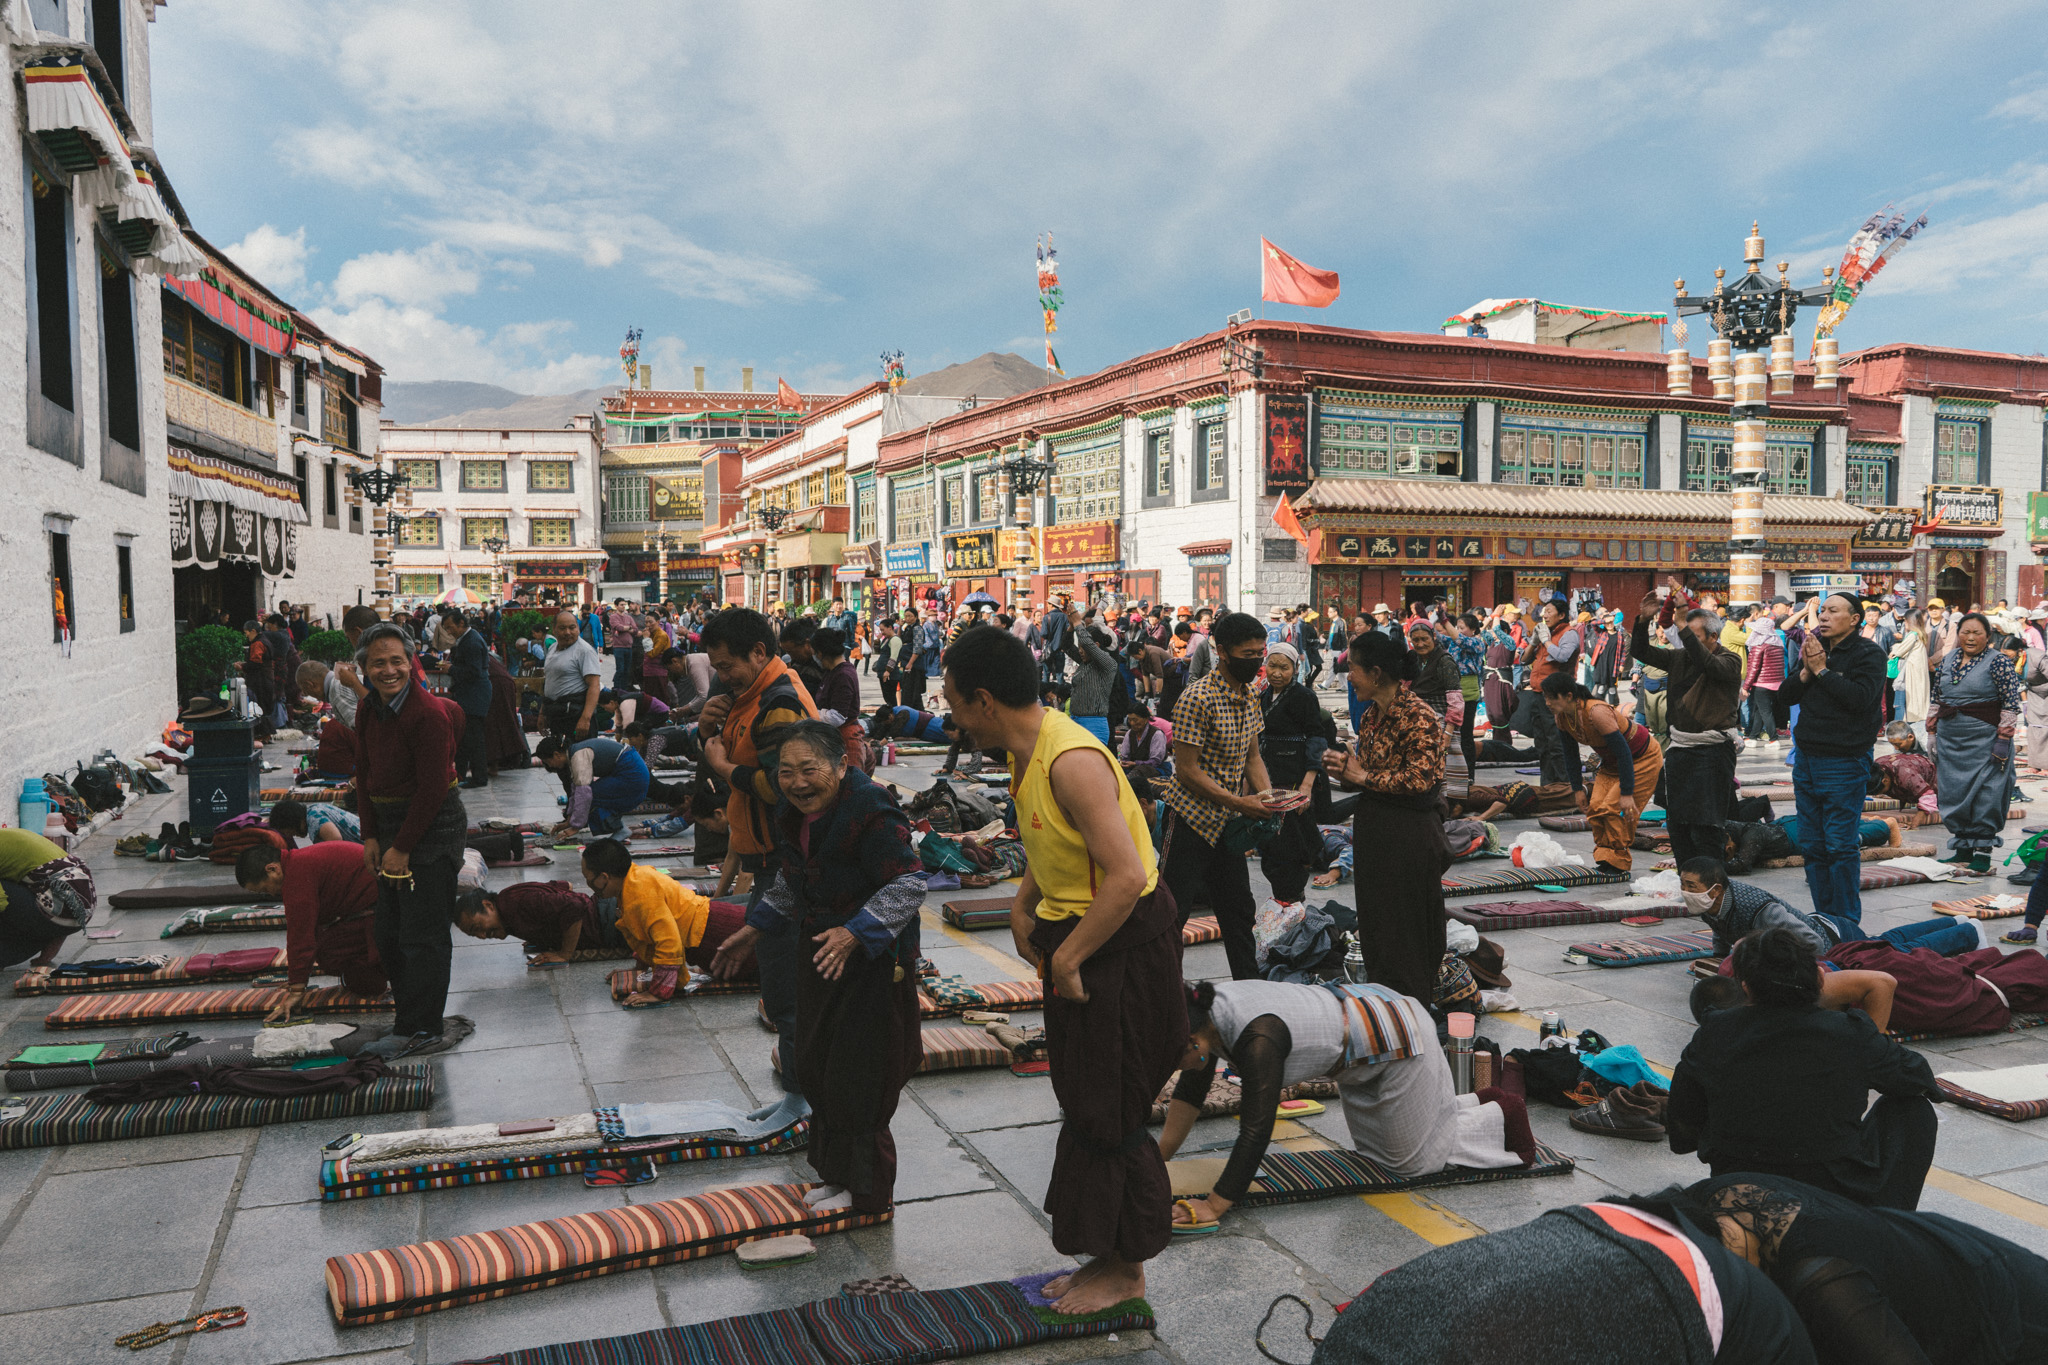 Tibetans prostrating in front of the Jokhang Monastery